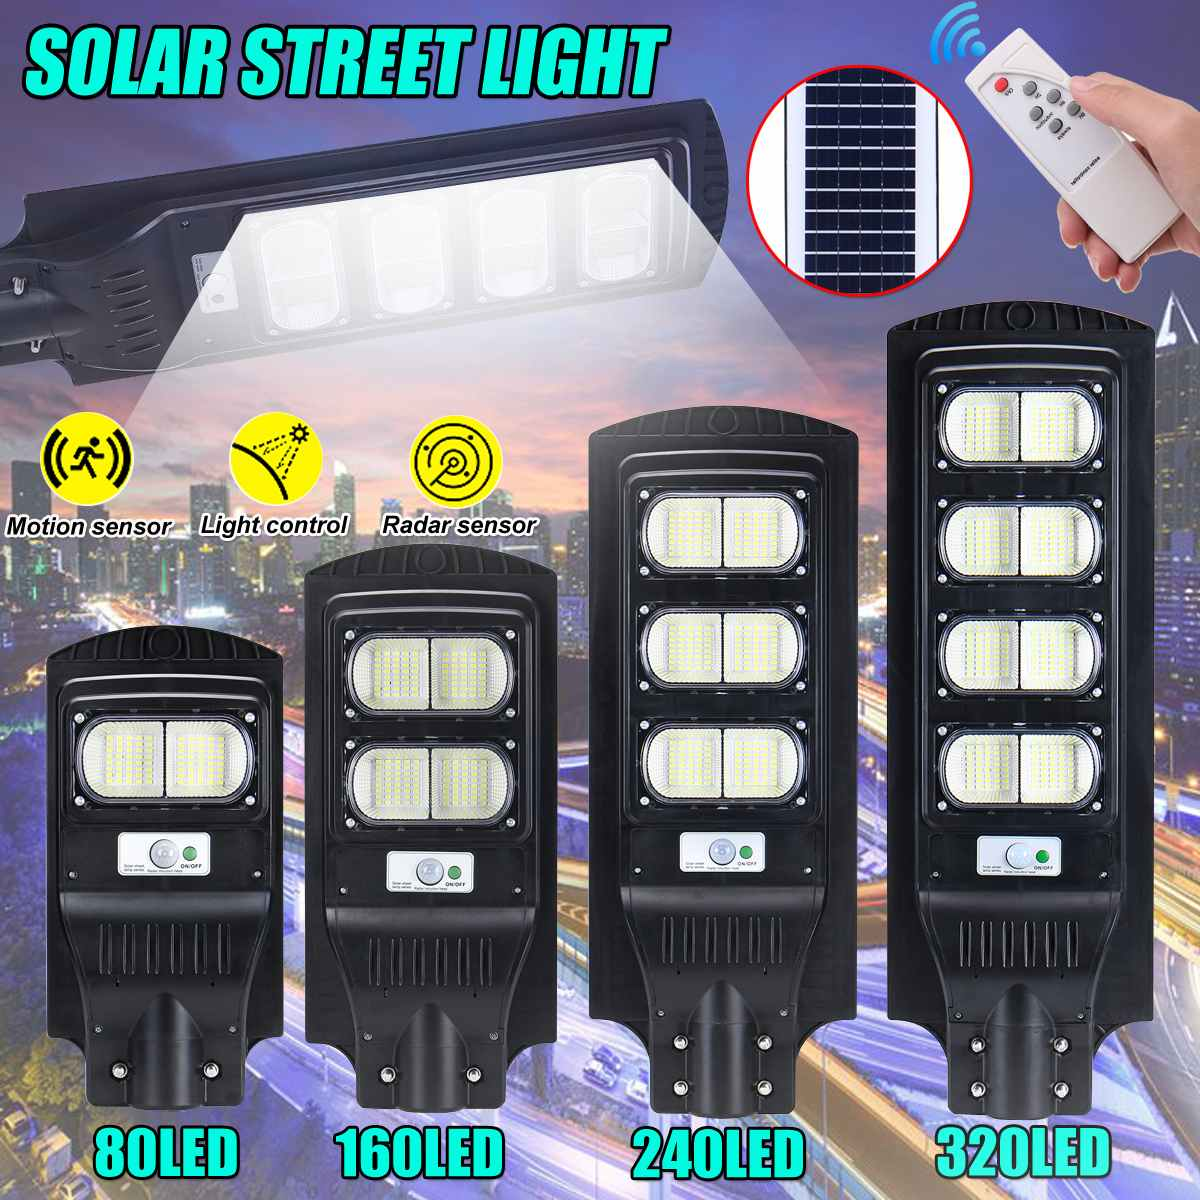 Polycrystalline Solar Led Street Light Infrared Motion Wall Light Sensor 200/300/400/800W Outdoor Lighting Garden Lamp Led Light